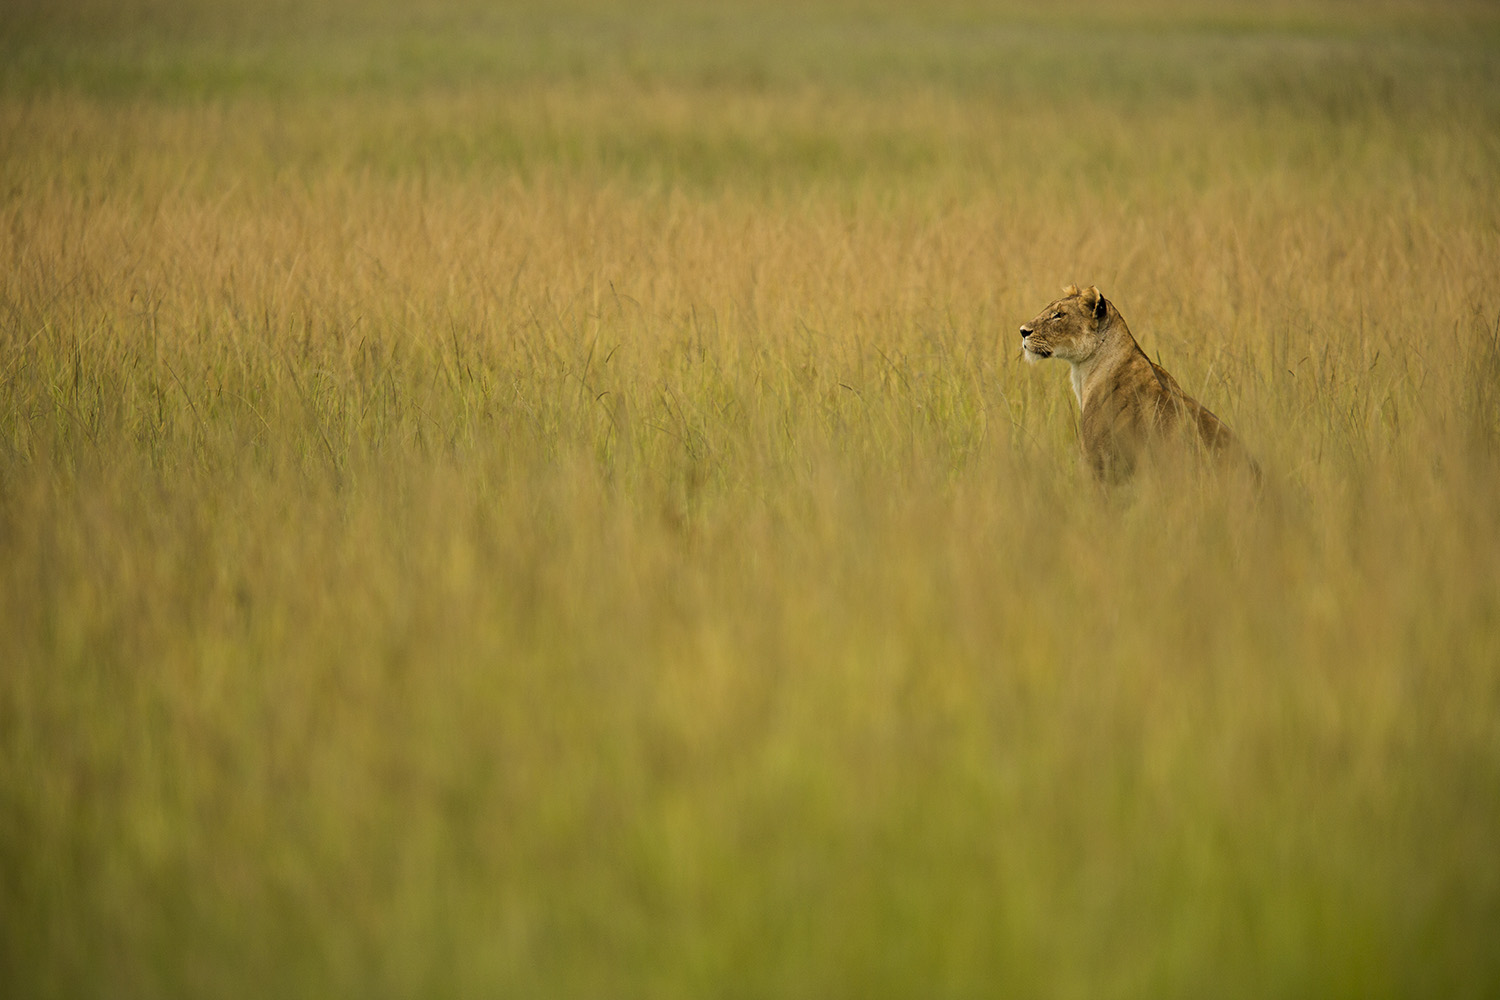 Lioness in yellow grass